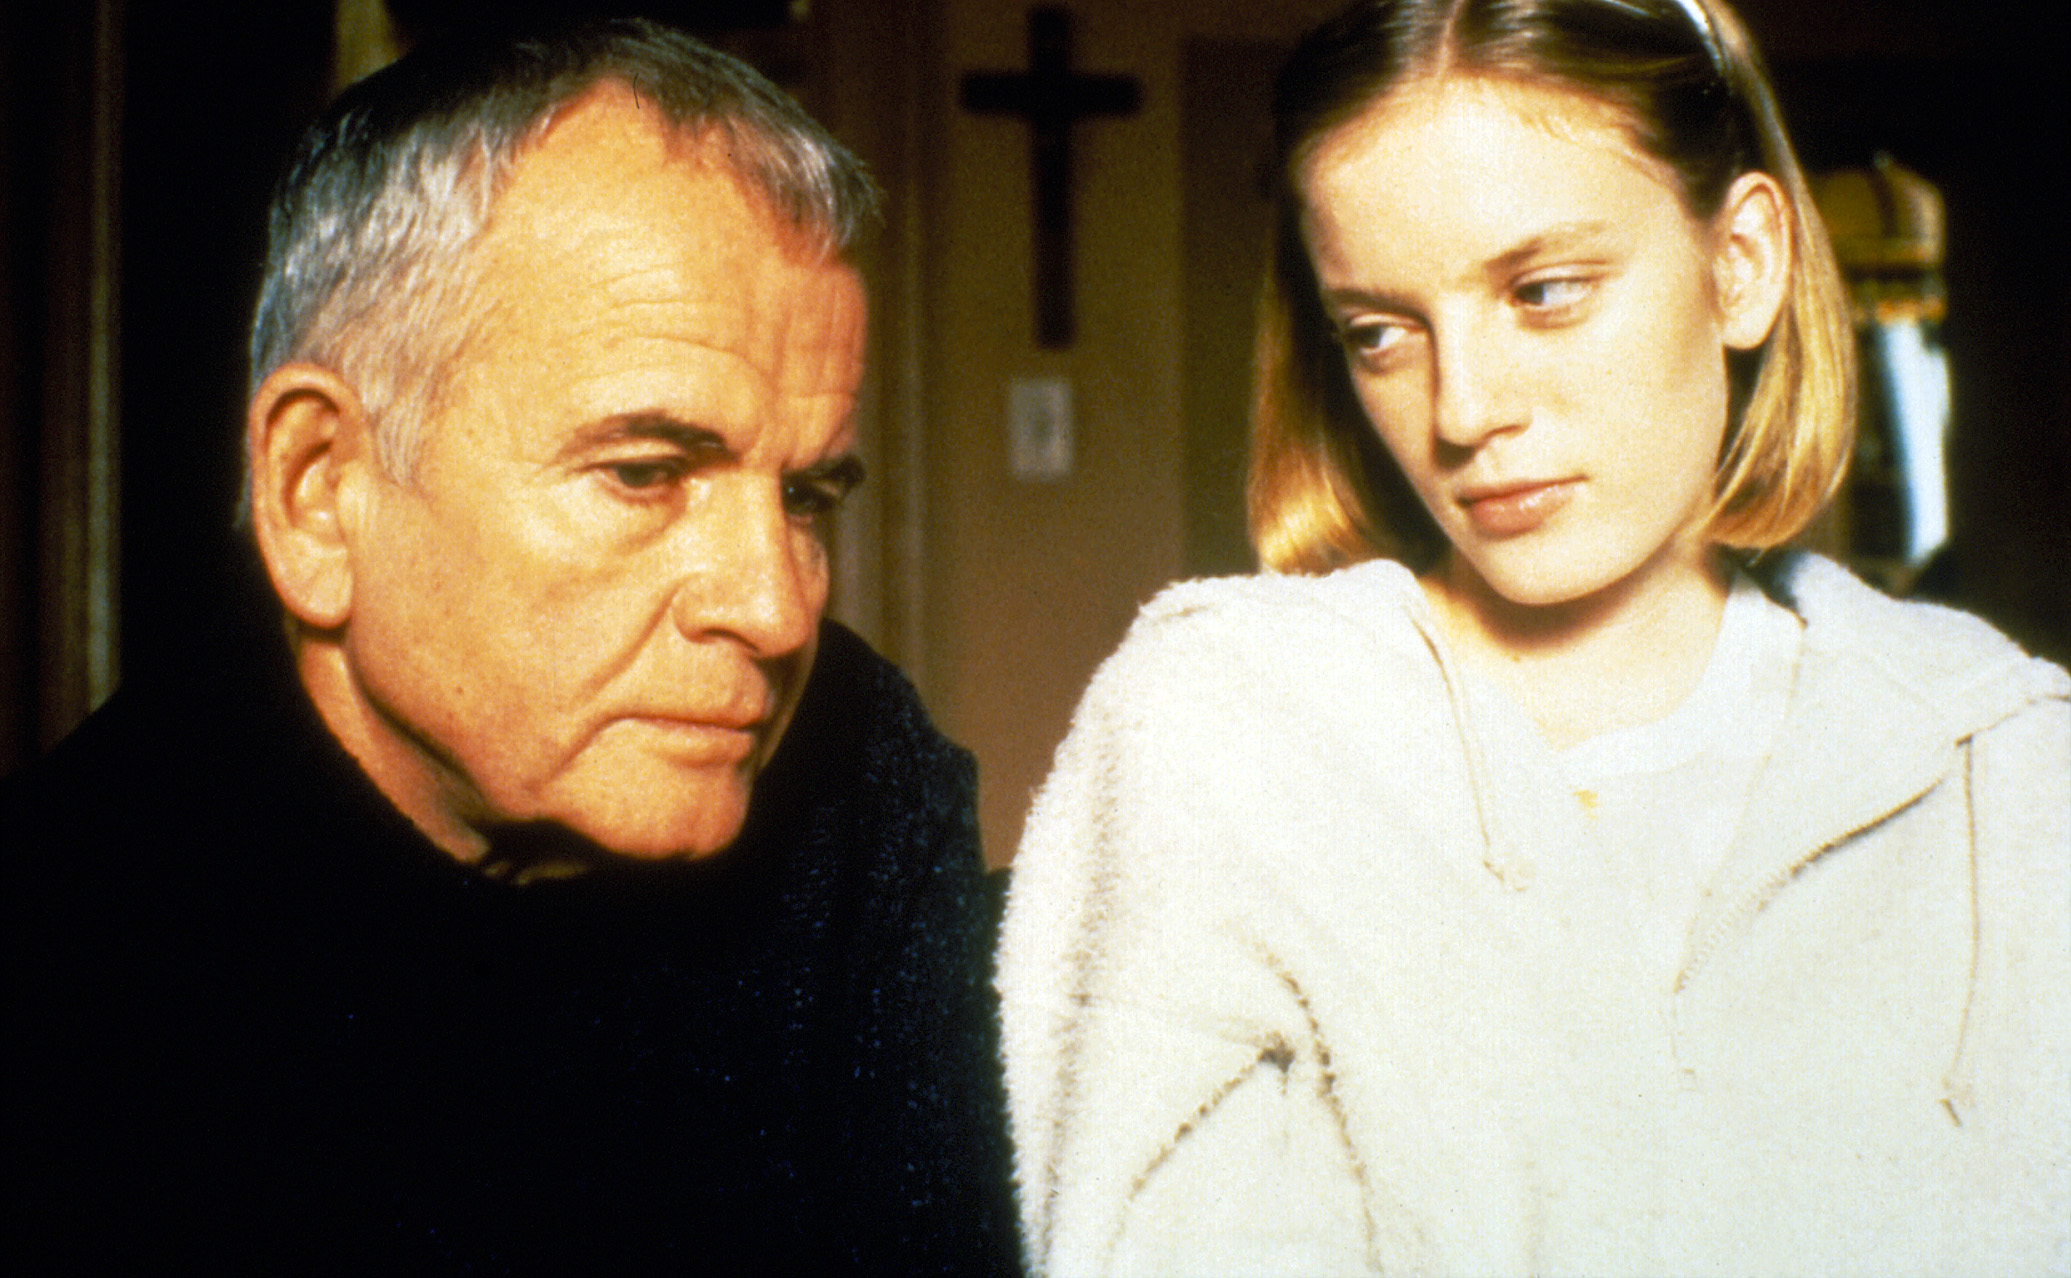 Ian Holm (\u00e0 gauche) et Sarah Polley dans The Sweet Hereafter